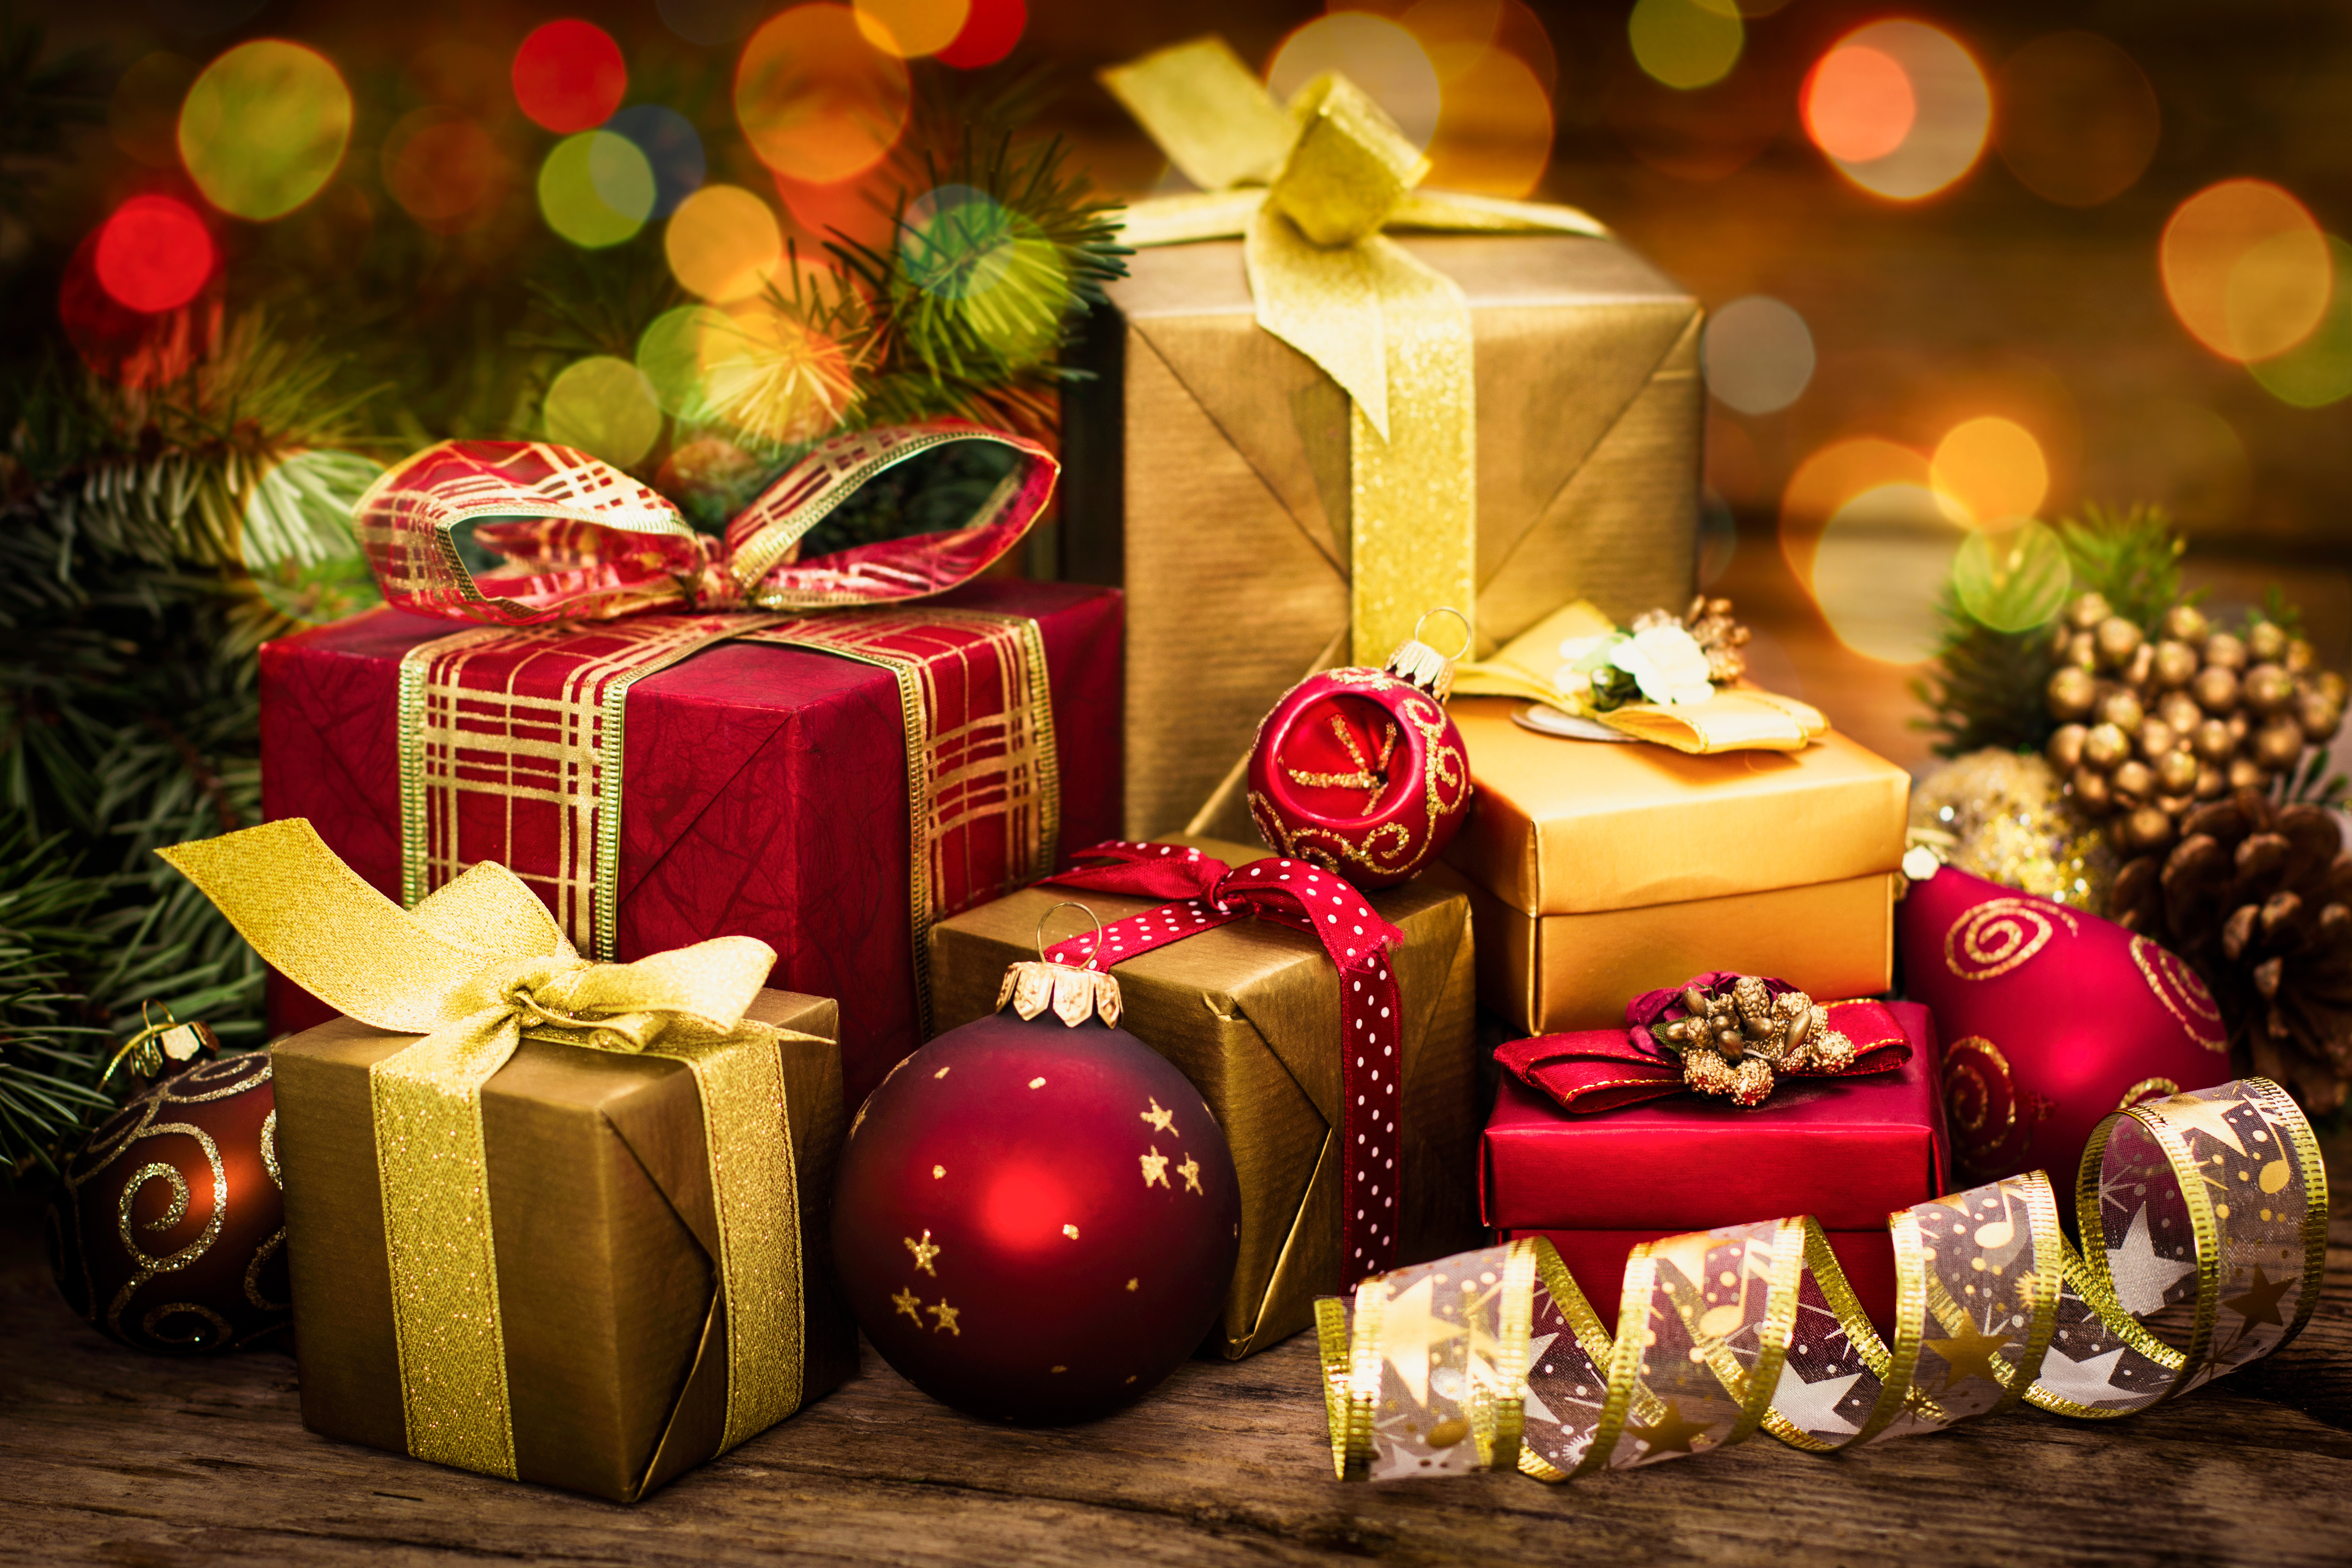 Christmas-gifts-on-wooden-background